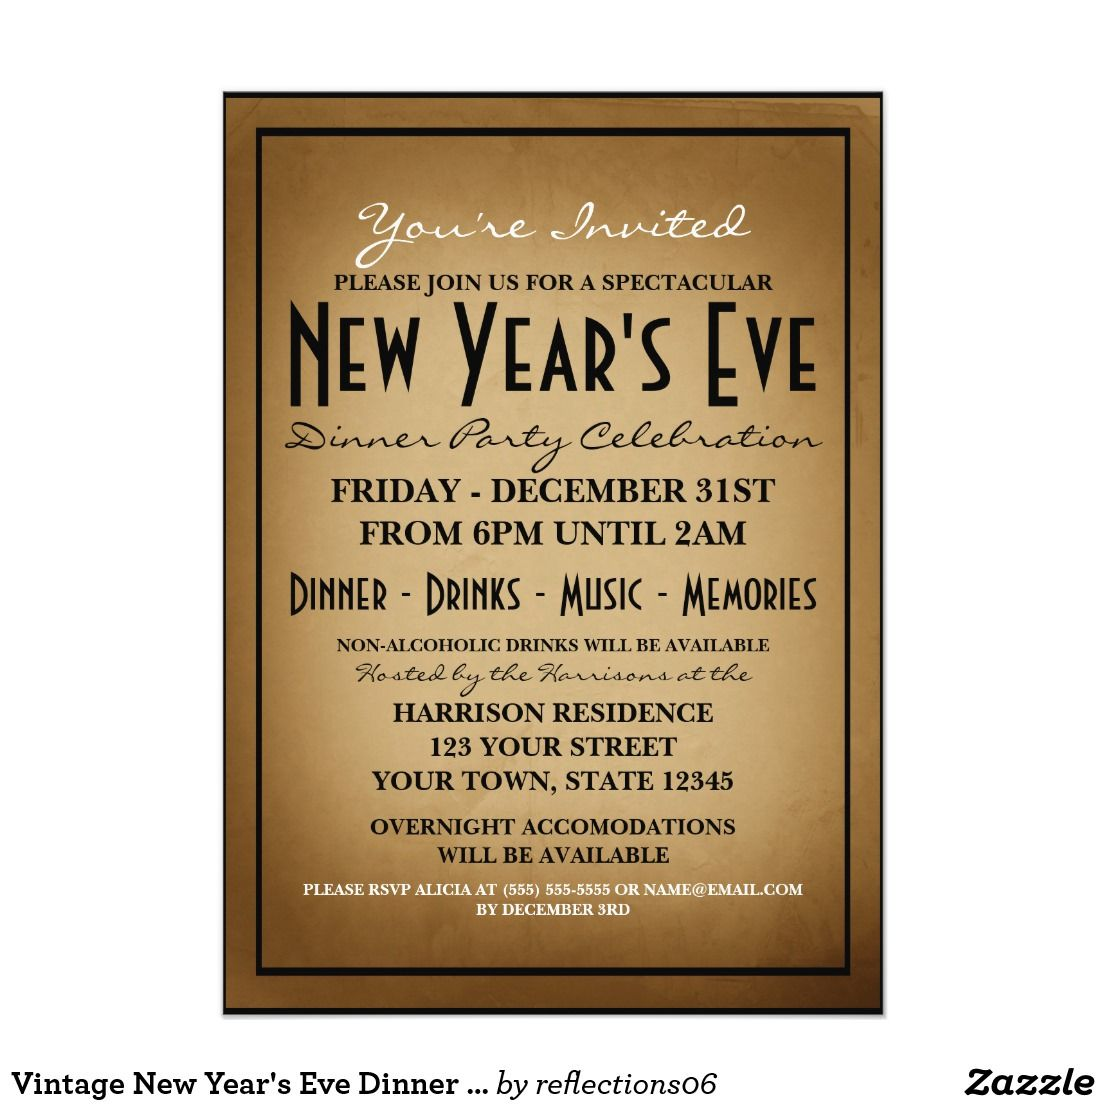 vintage new years eve dinner party invitation make your new years eve party an event to